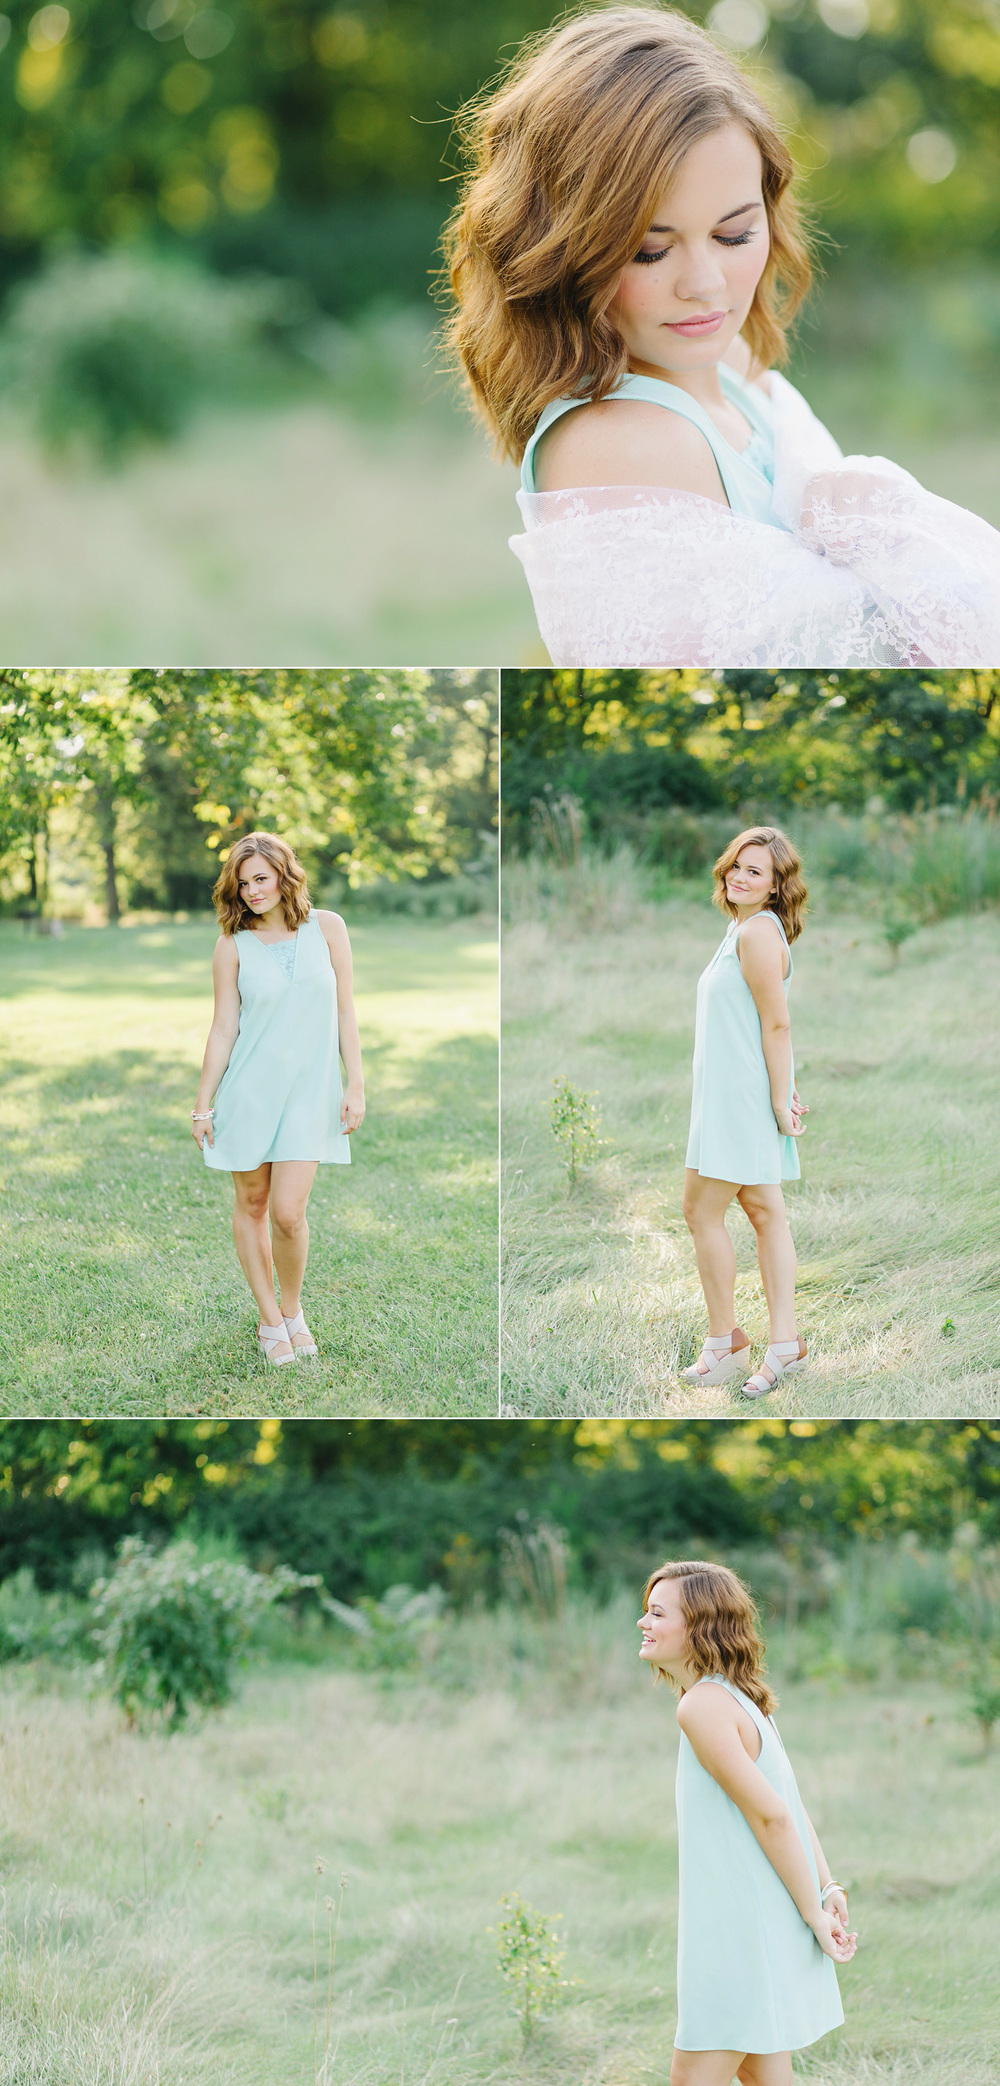 Carefree, fun senior portraits by Lux Senior Photography | Dayton, Ohio Senior Photographer